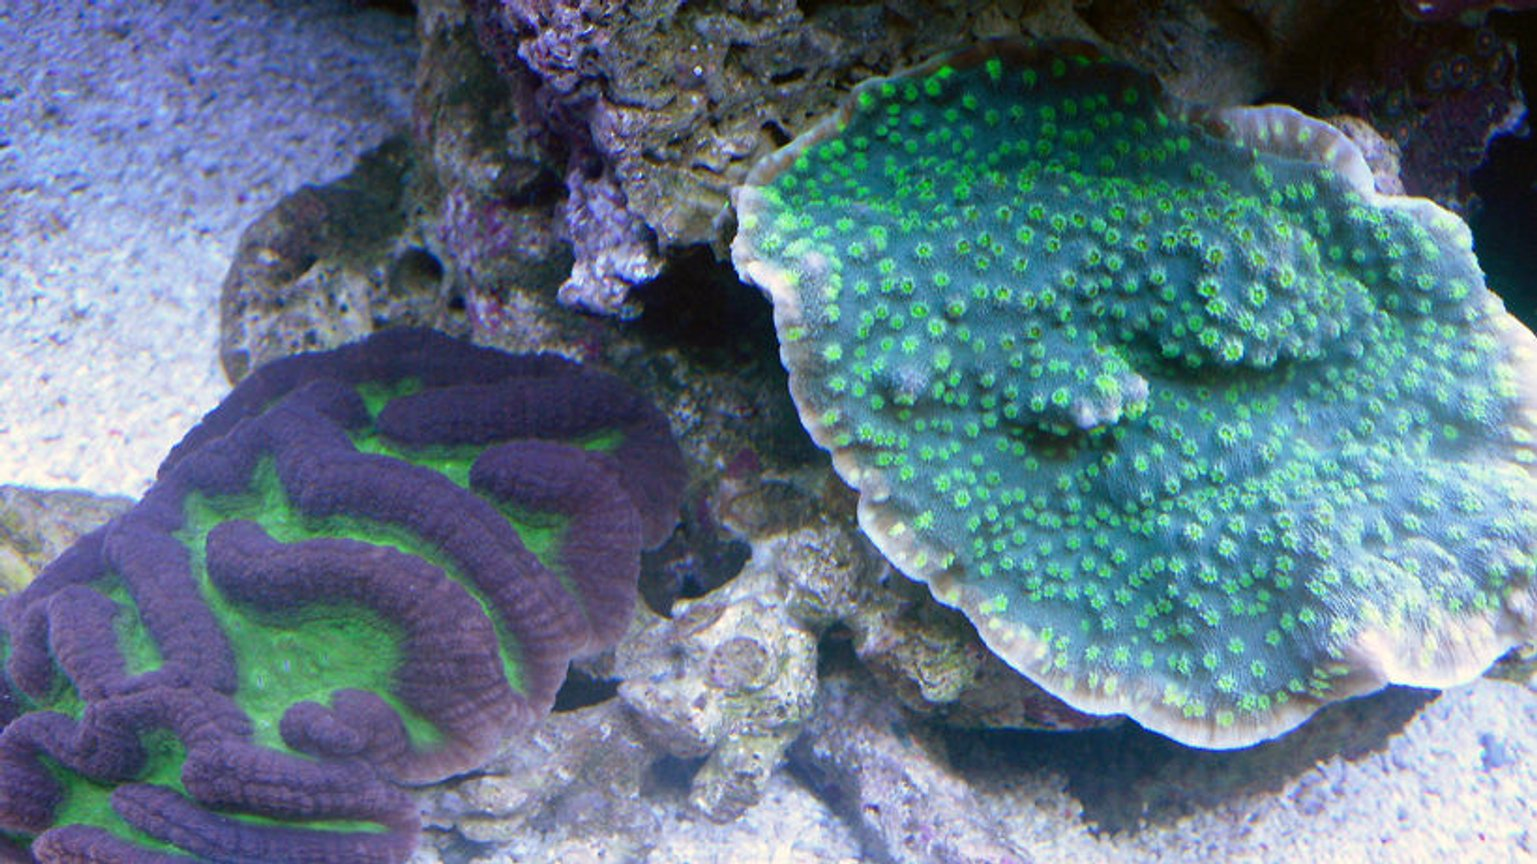 corals inverts - platygyra sp. - brain worm platygyra coral stocking in 72 gallons tank - My 72g Sps tank